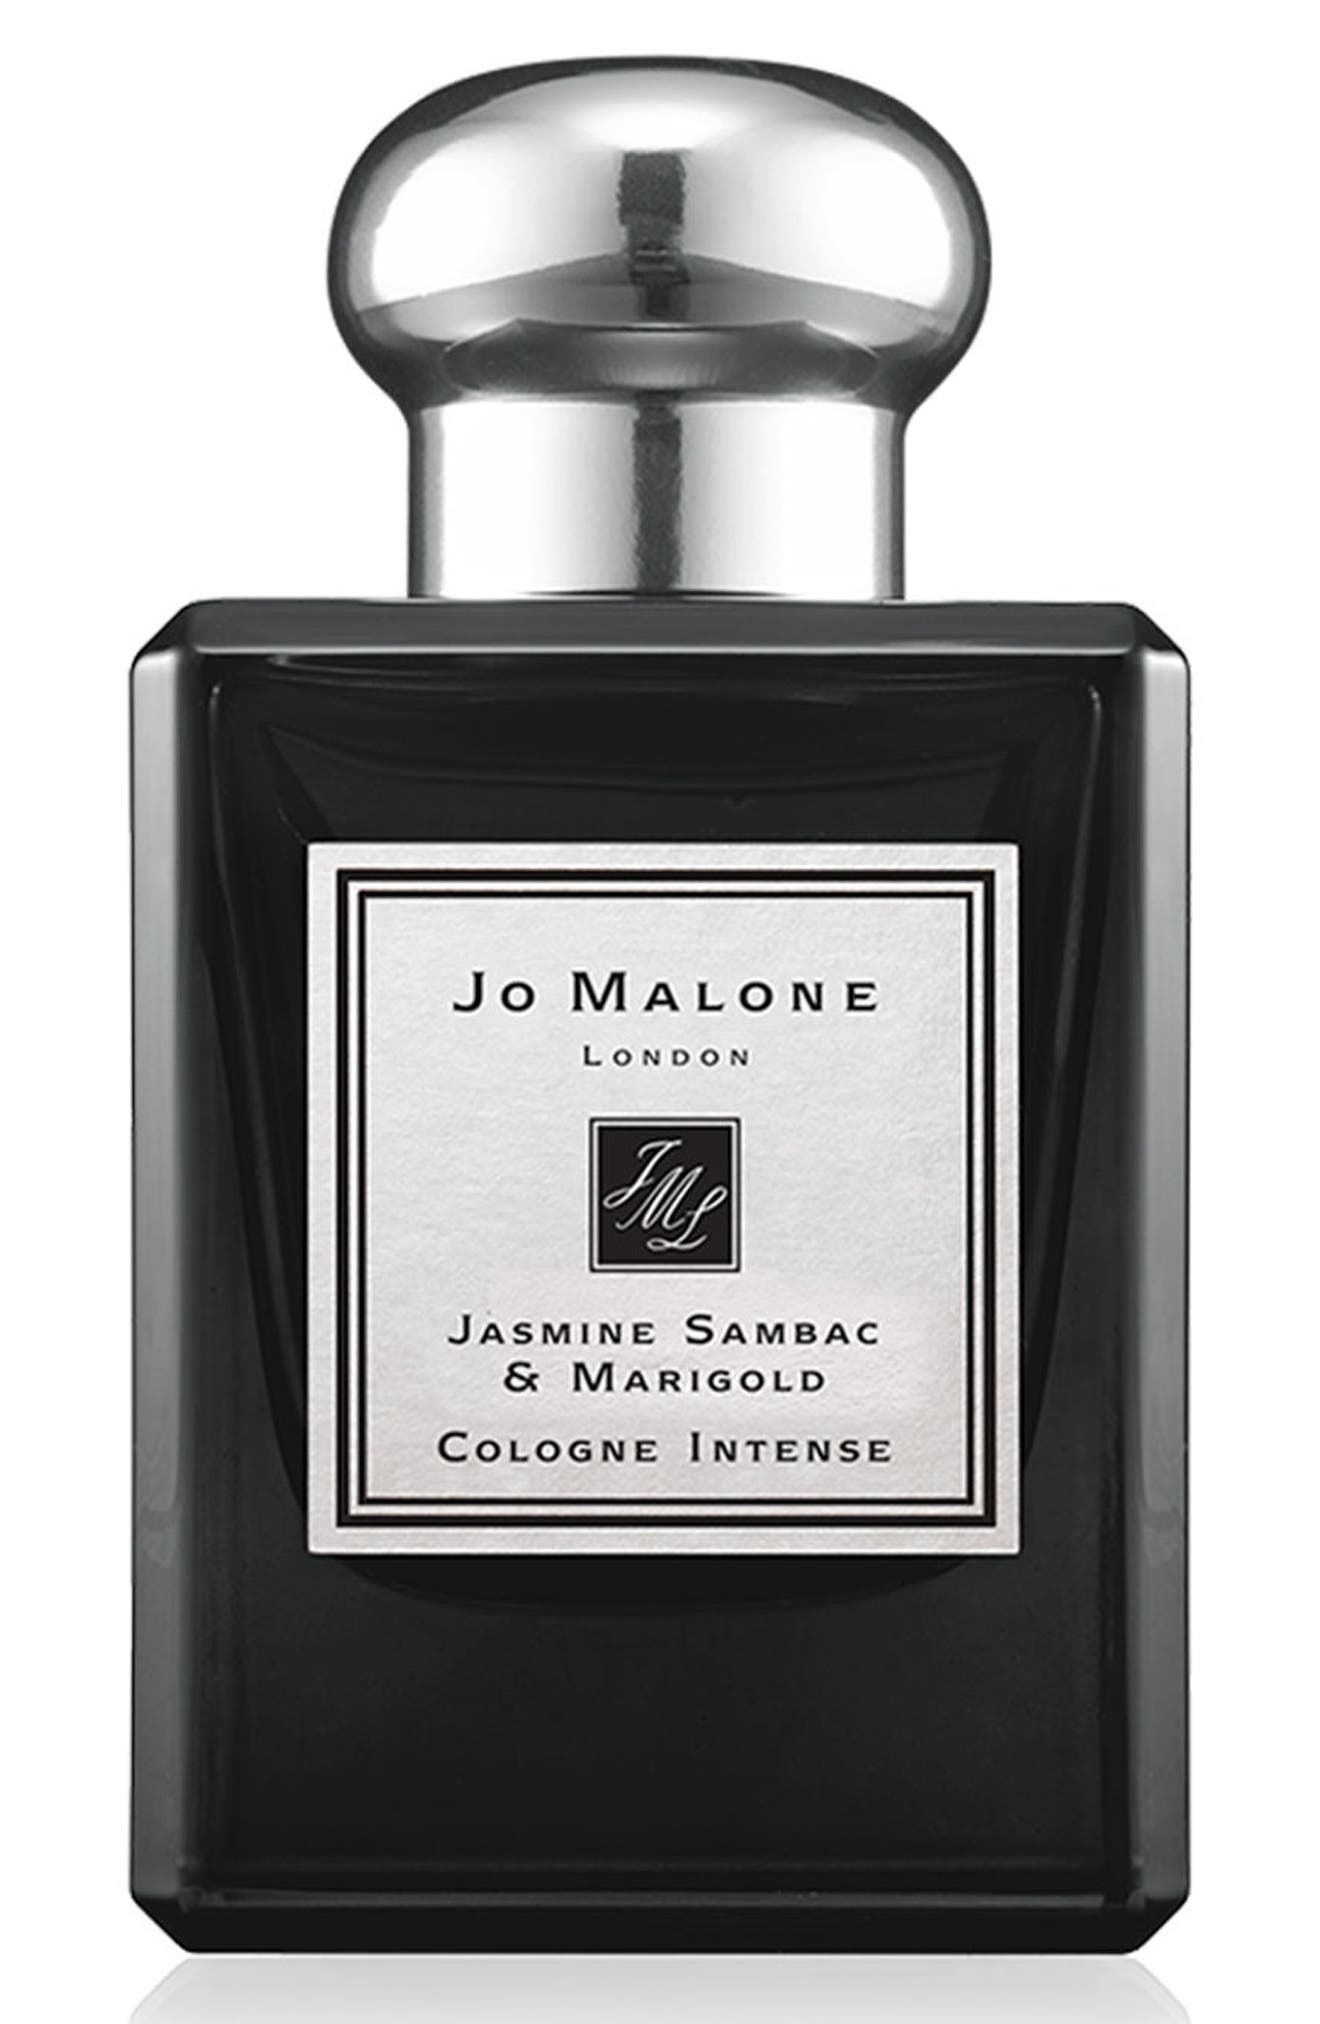 Jo Malone London™ Jasmine Sambac & Marigold Cologne Intense